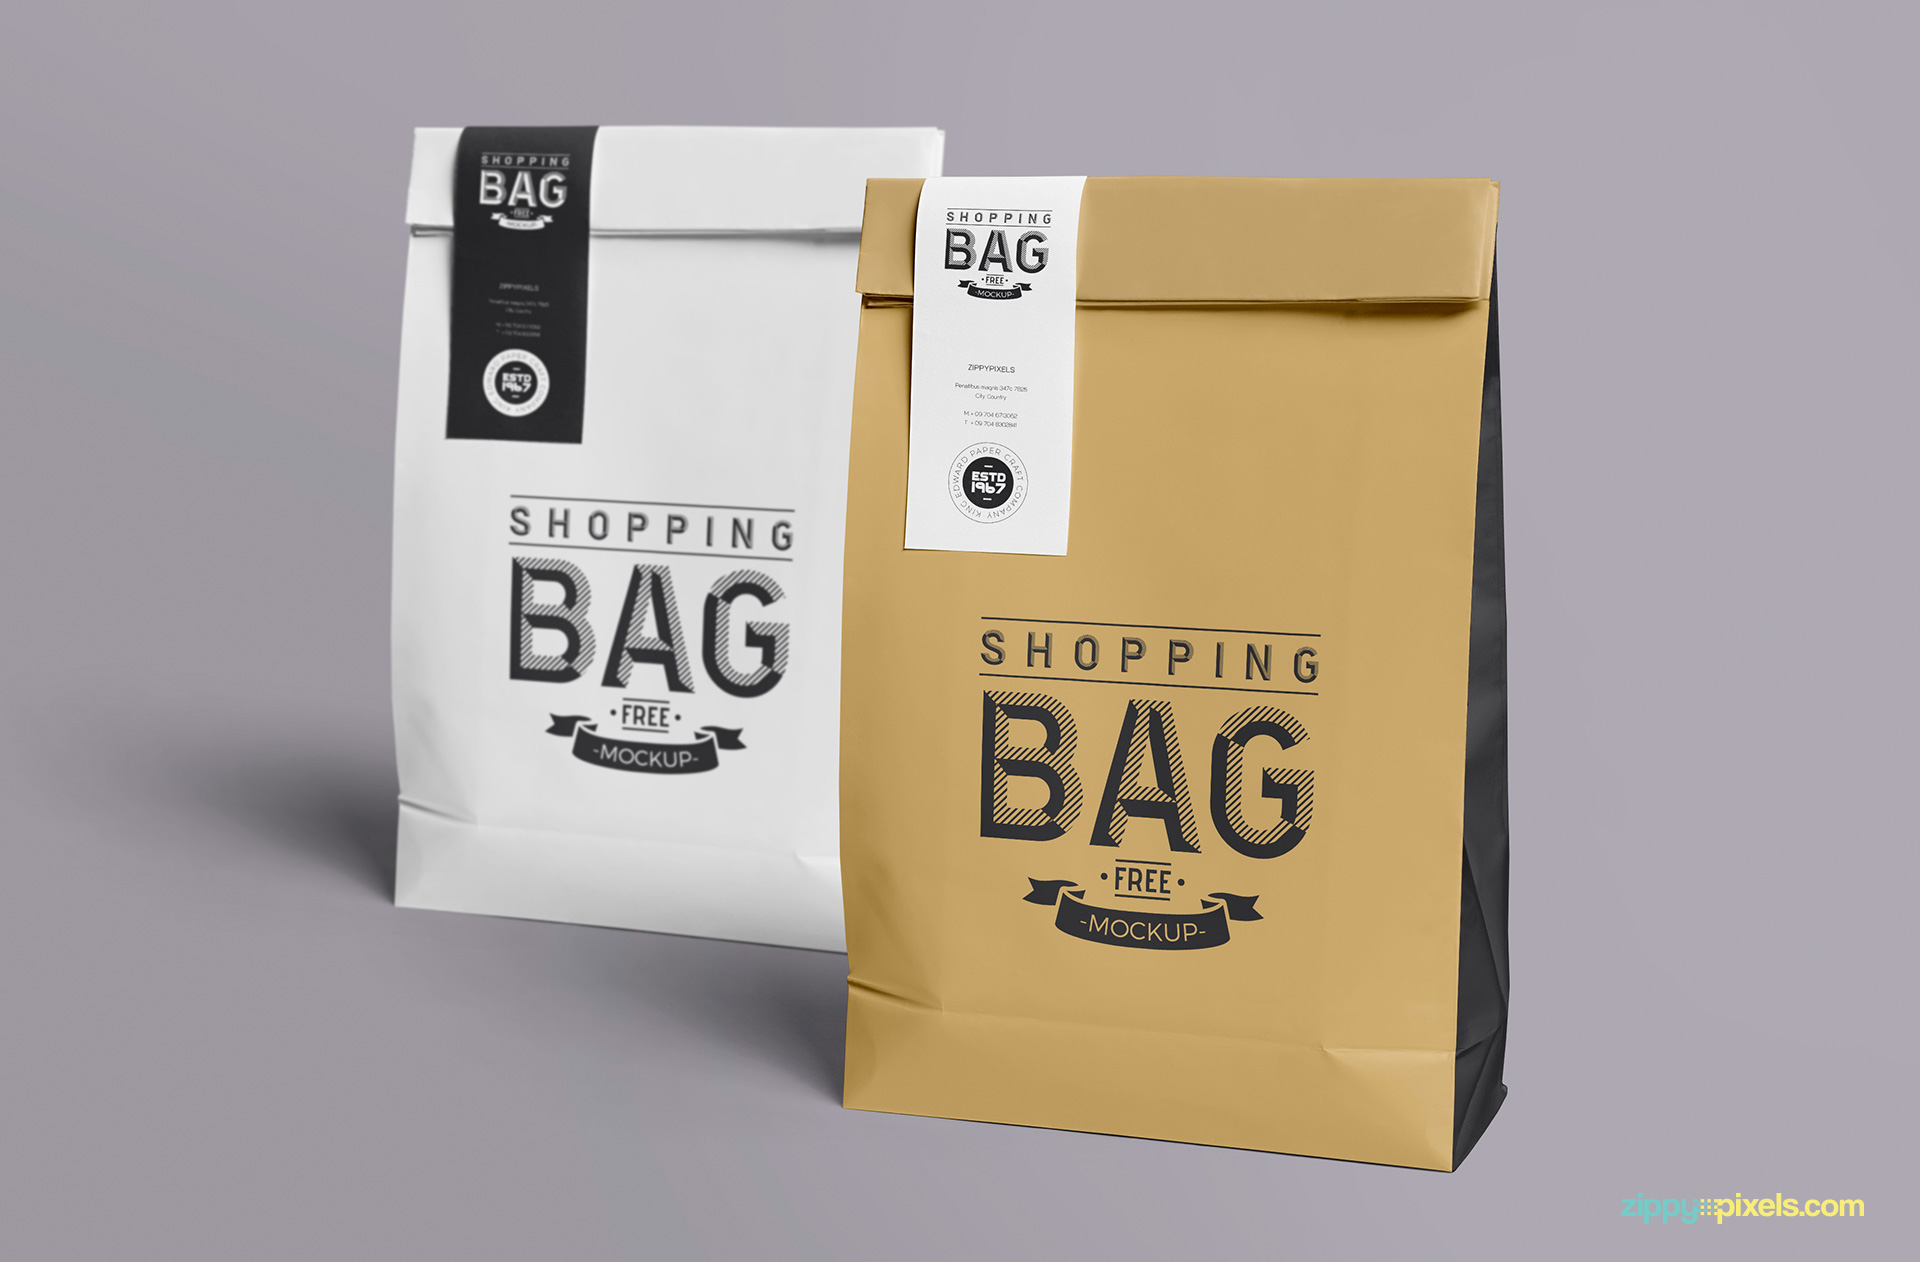 Free paper bag mock up to show different shopping bag designs.